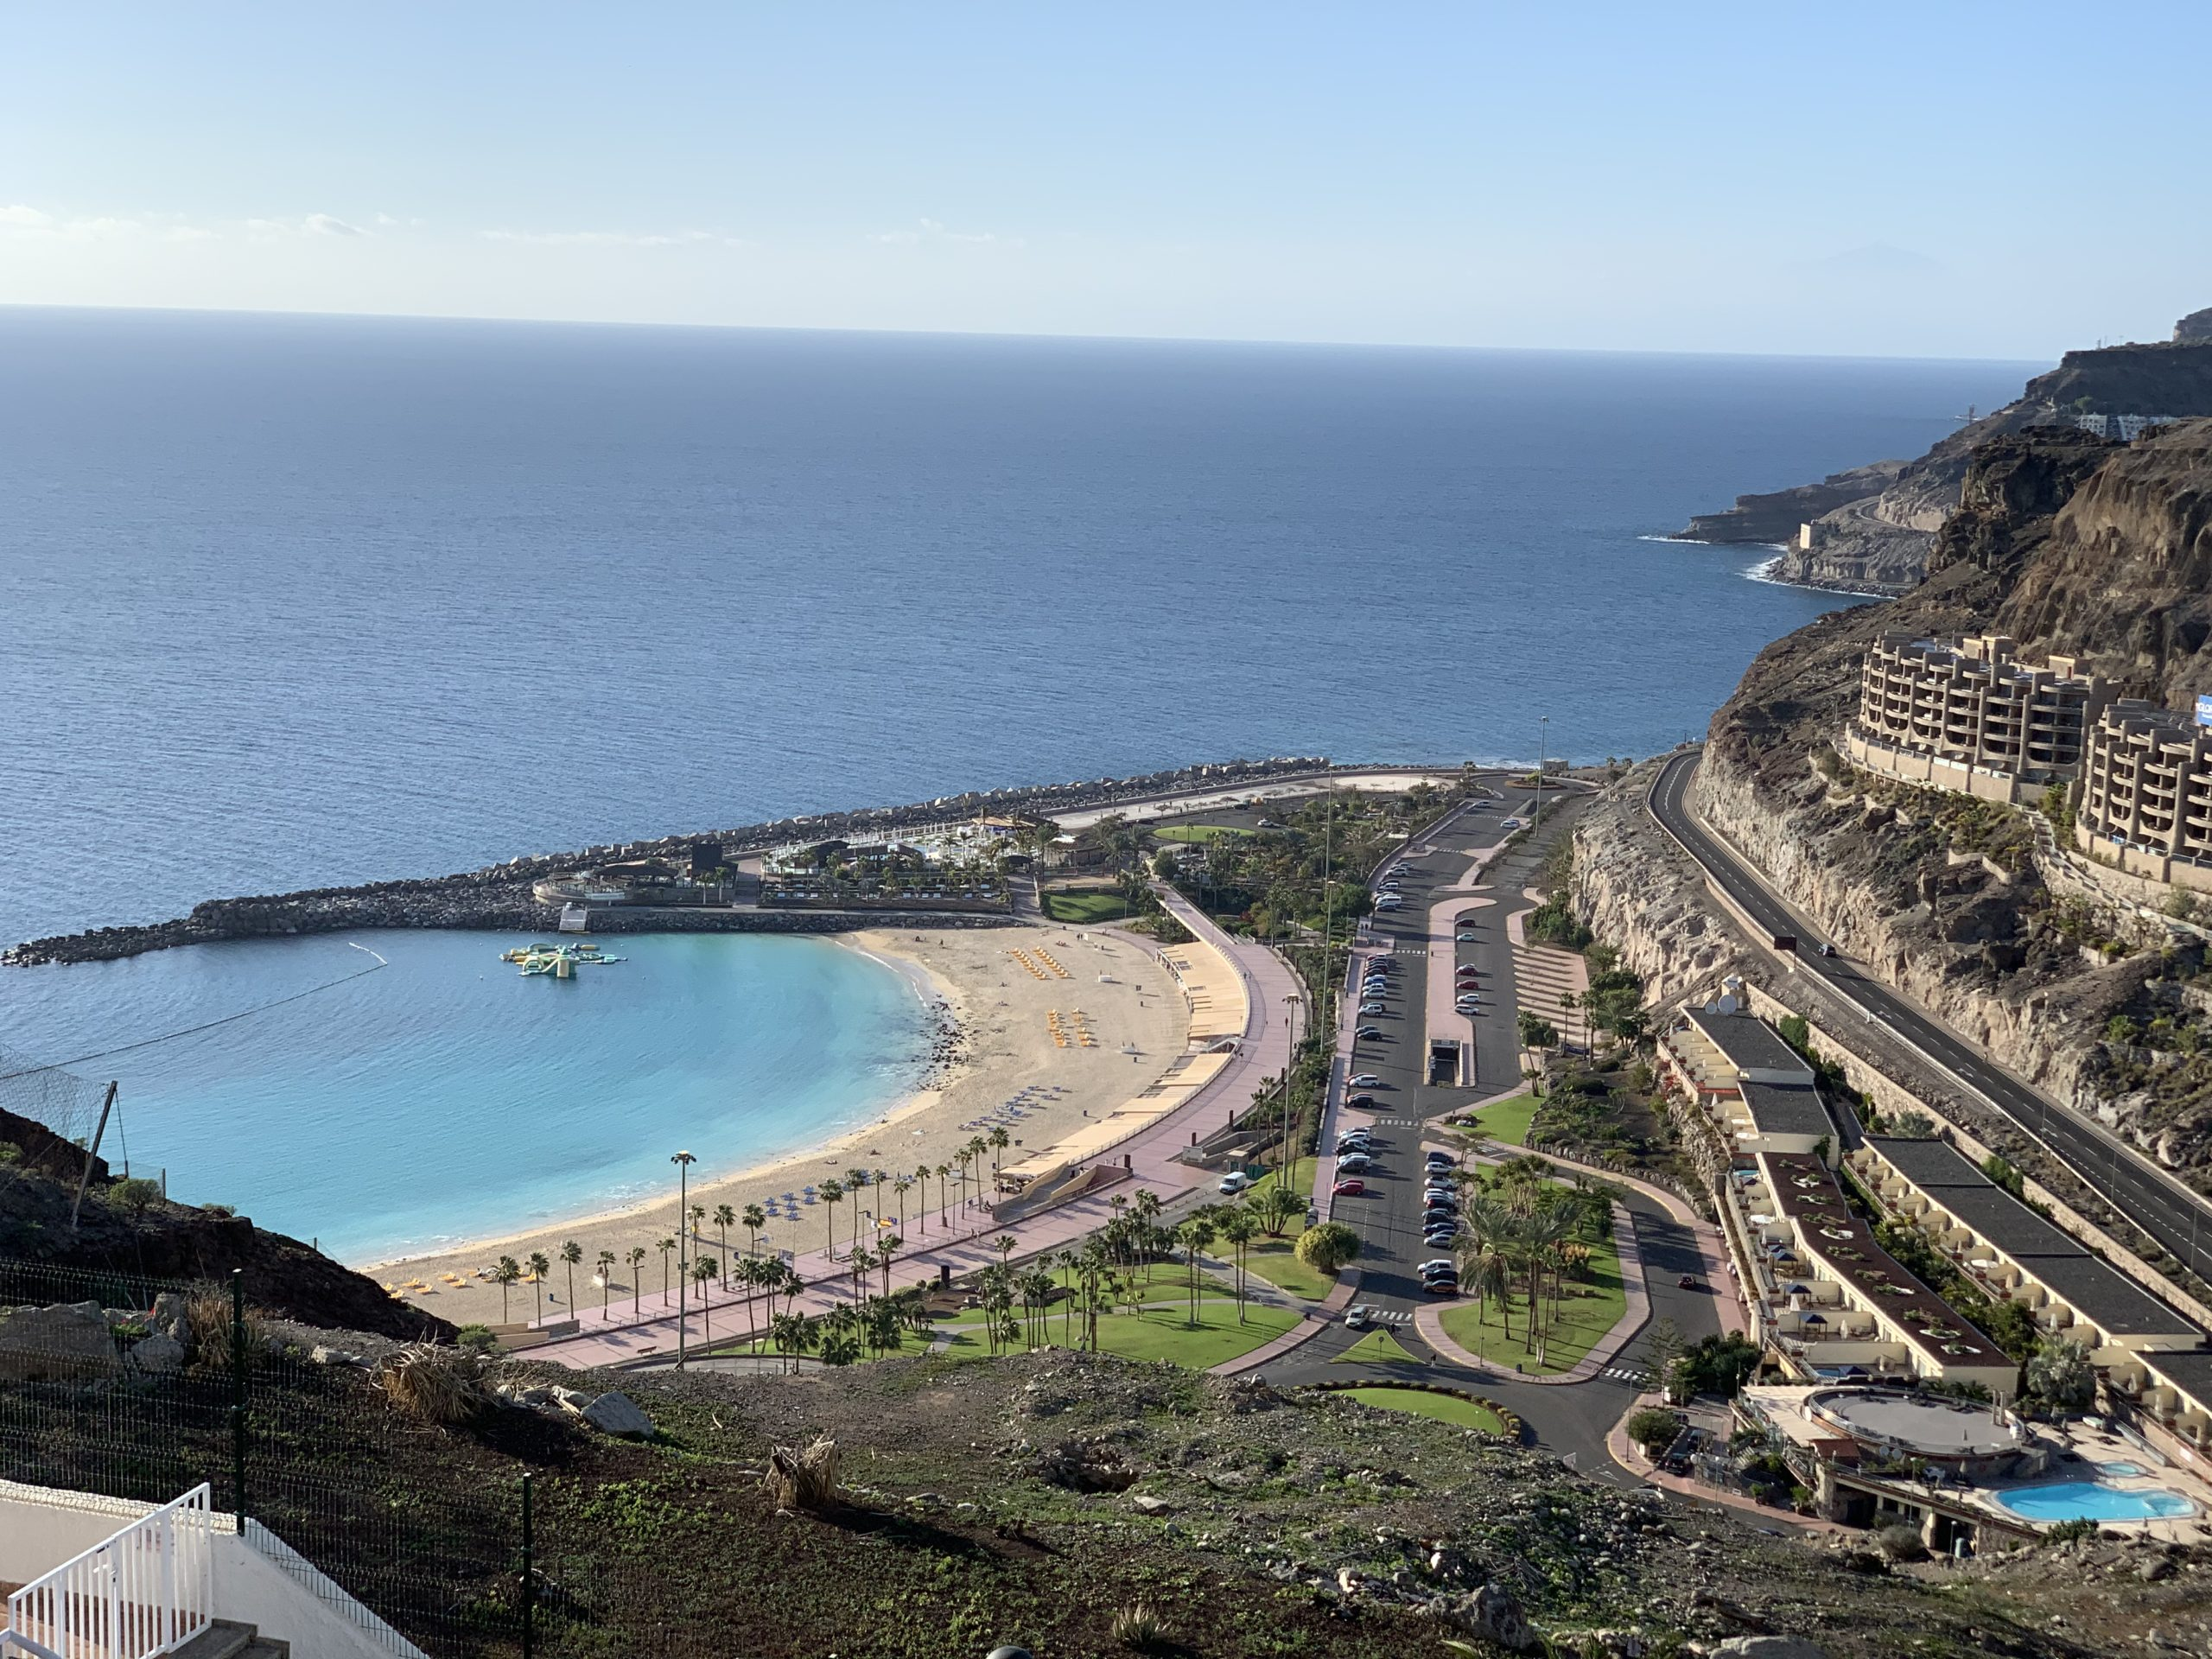 Apartment in Balcon Amadores with Panoramic Views over Amadores